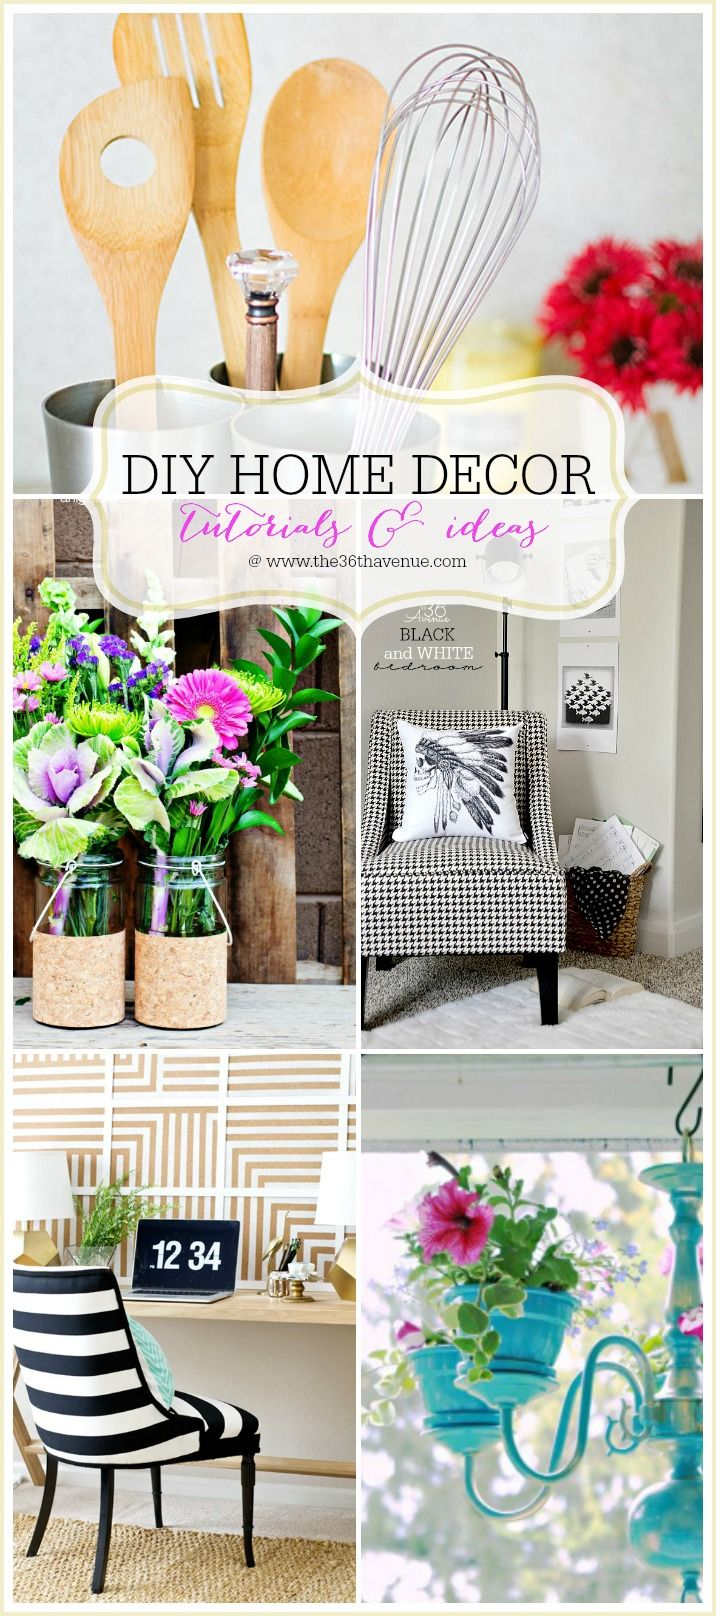 Decor Hacks Check Out All Of These Fun Diy Home Decor Tutorials And Ideas Easy Diy Projec